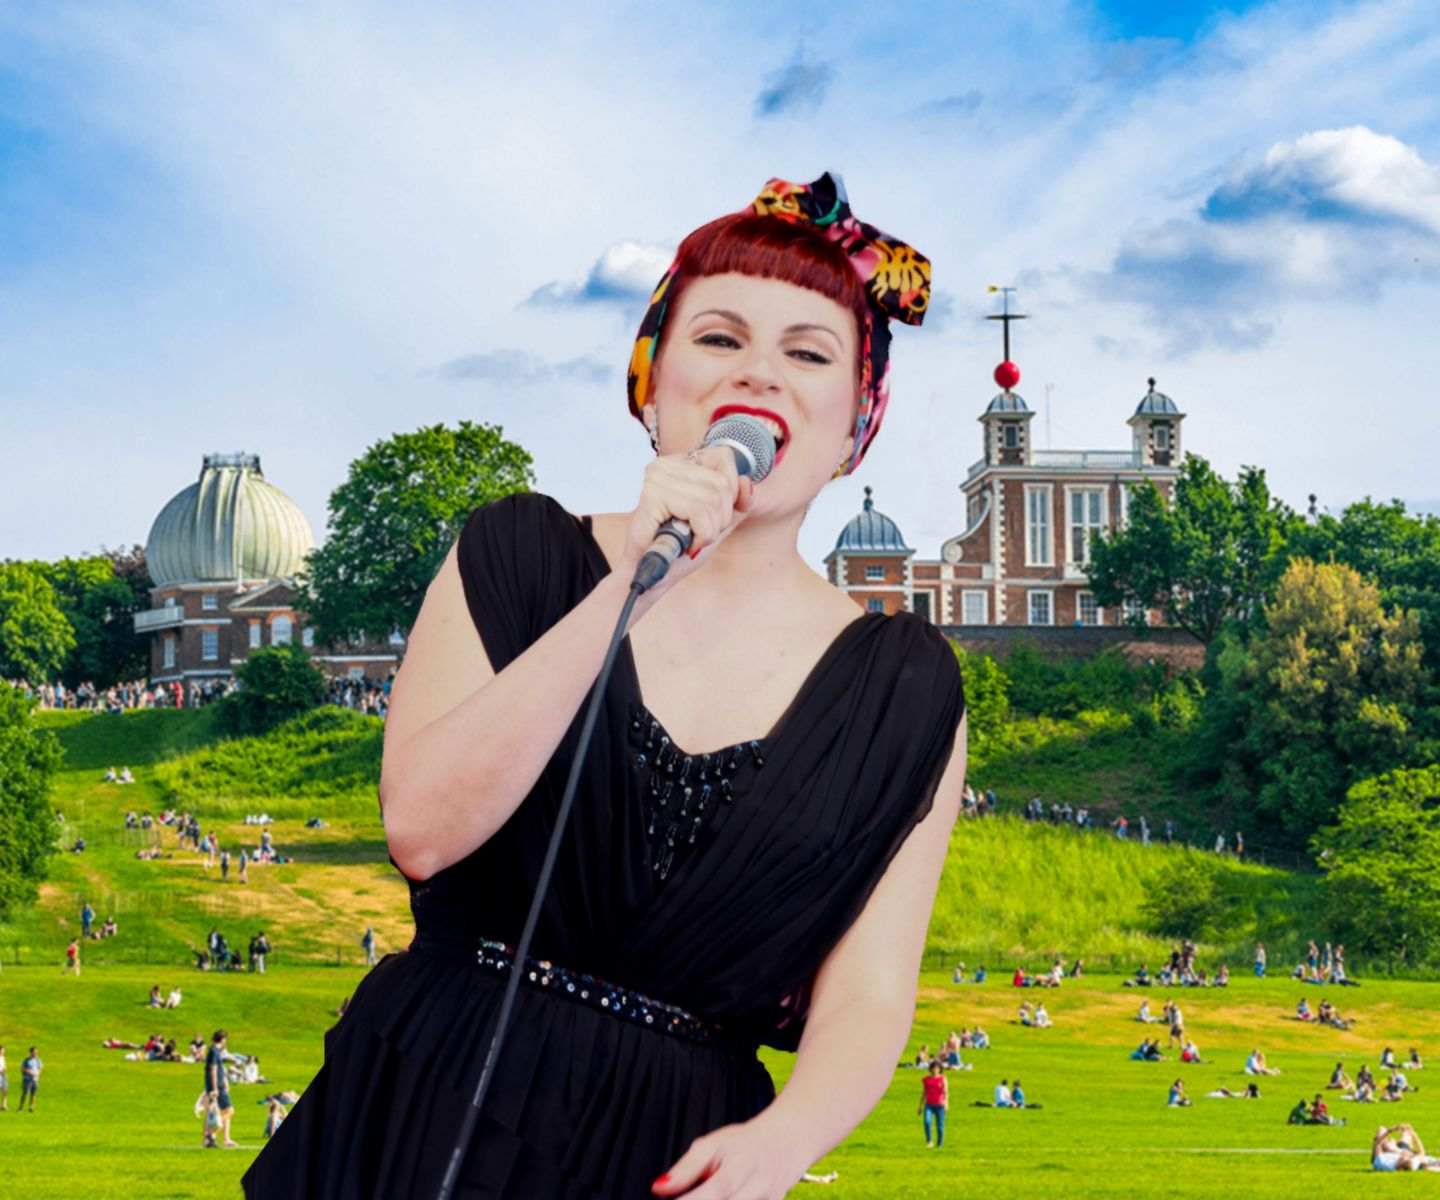 Free Sing-along film in the Park